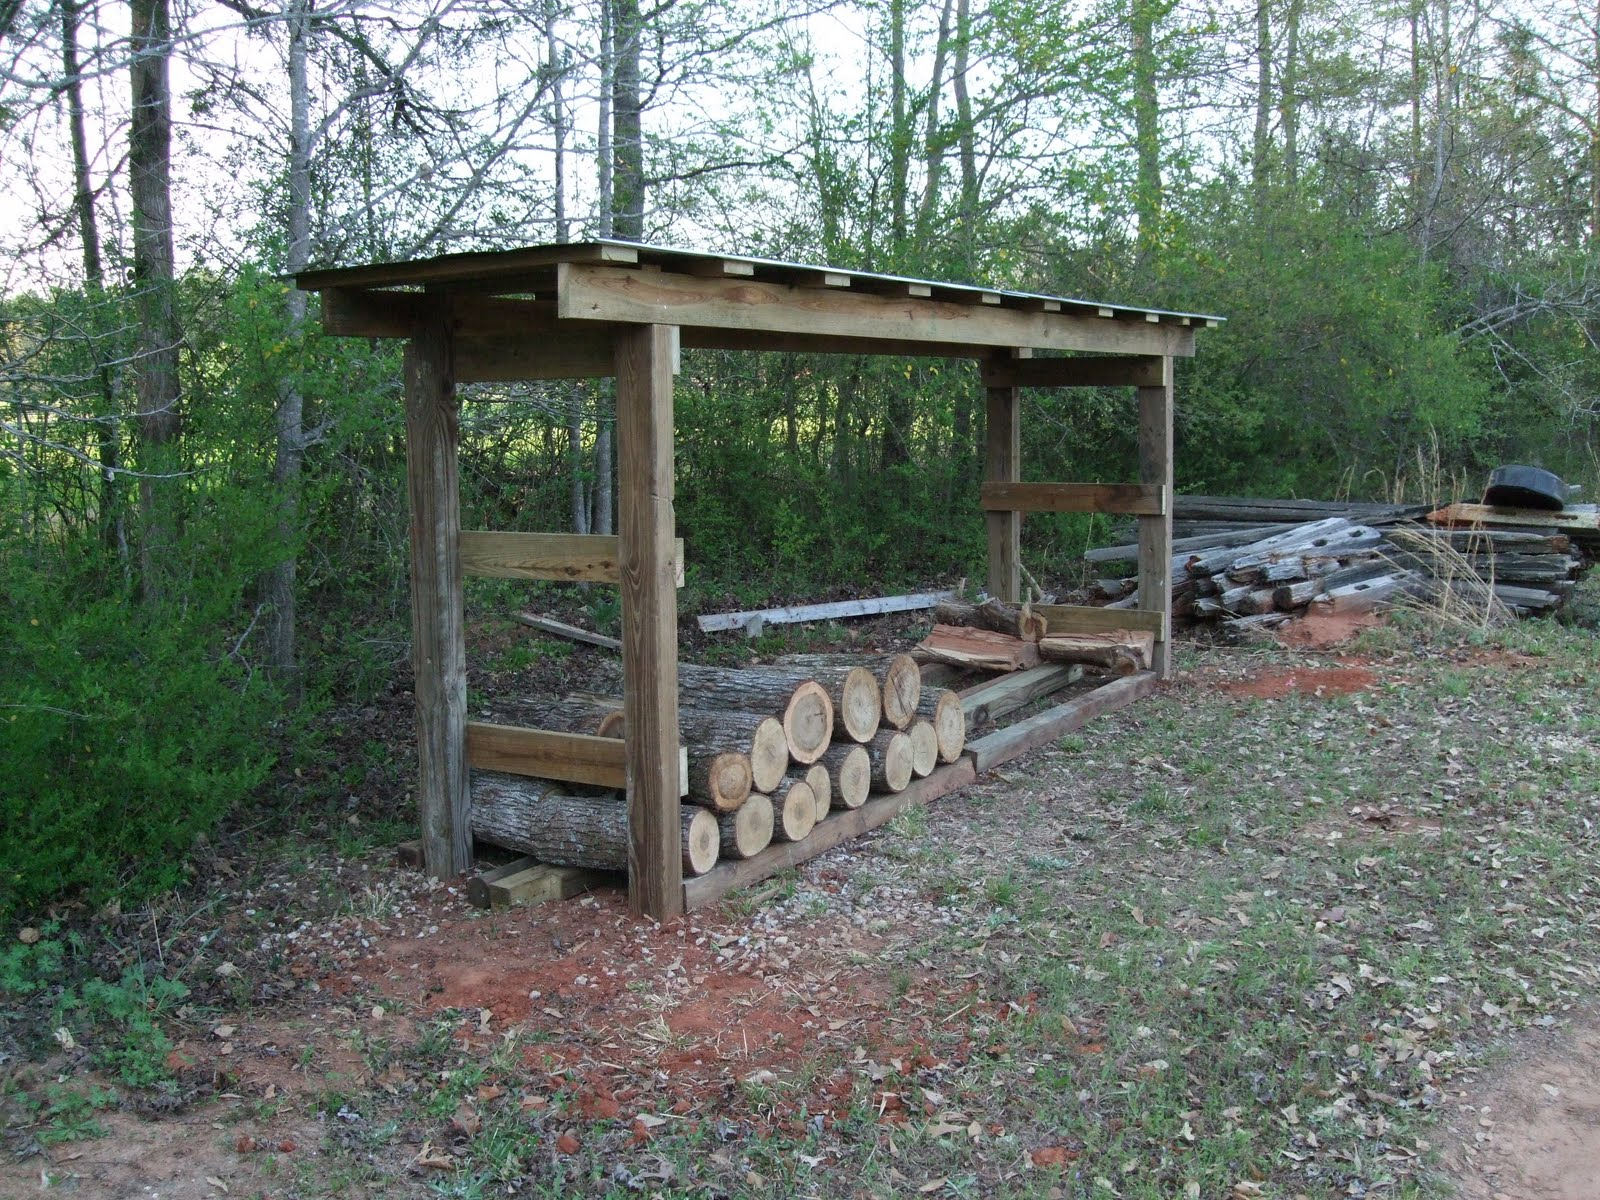 Fire Wood Sheds : Why You Need to Build the Best Firewood Sheds You ...